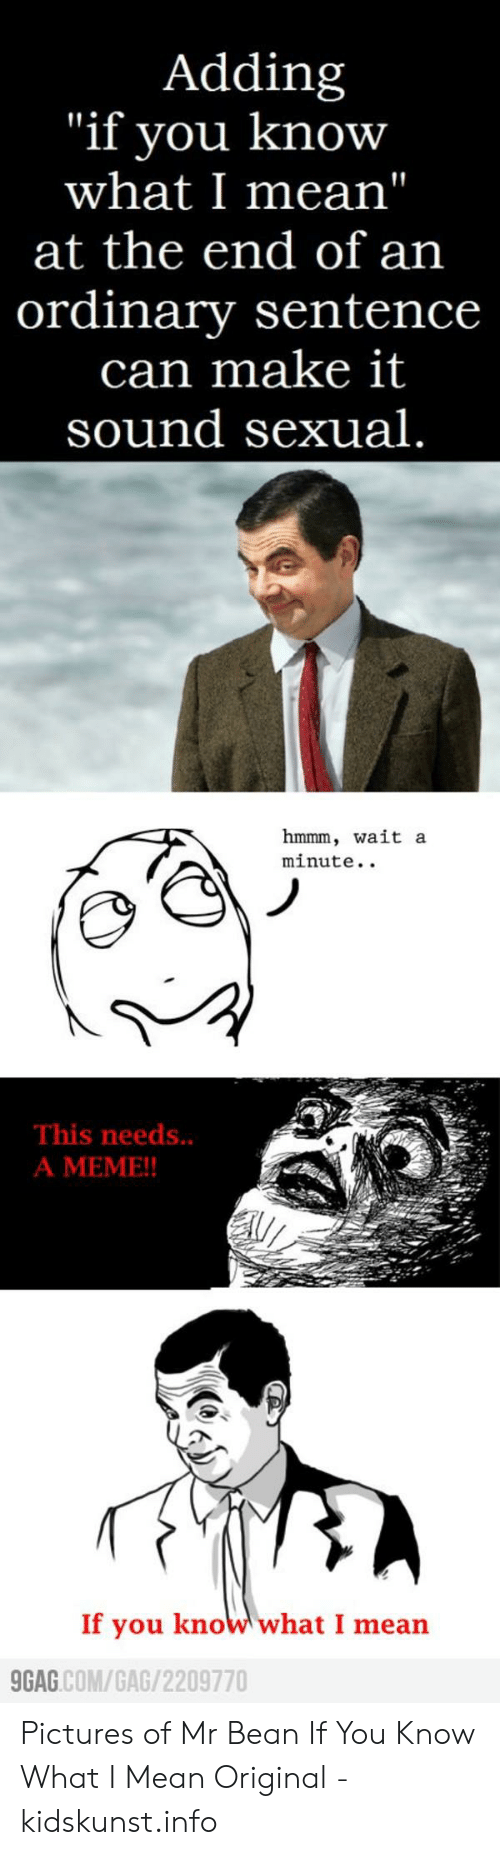 Mr bean waiting meme